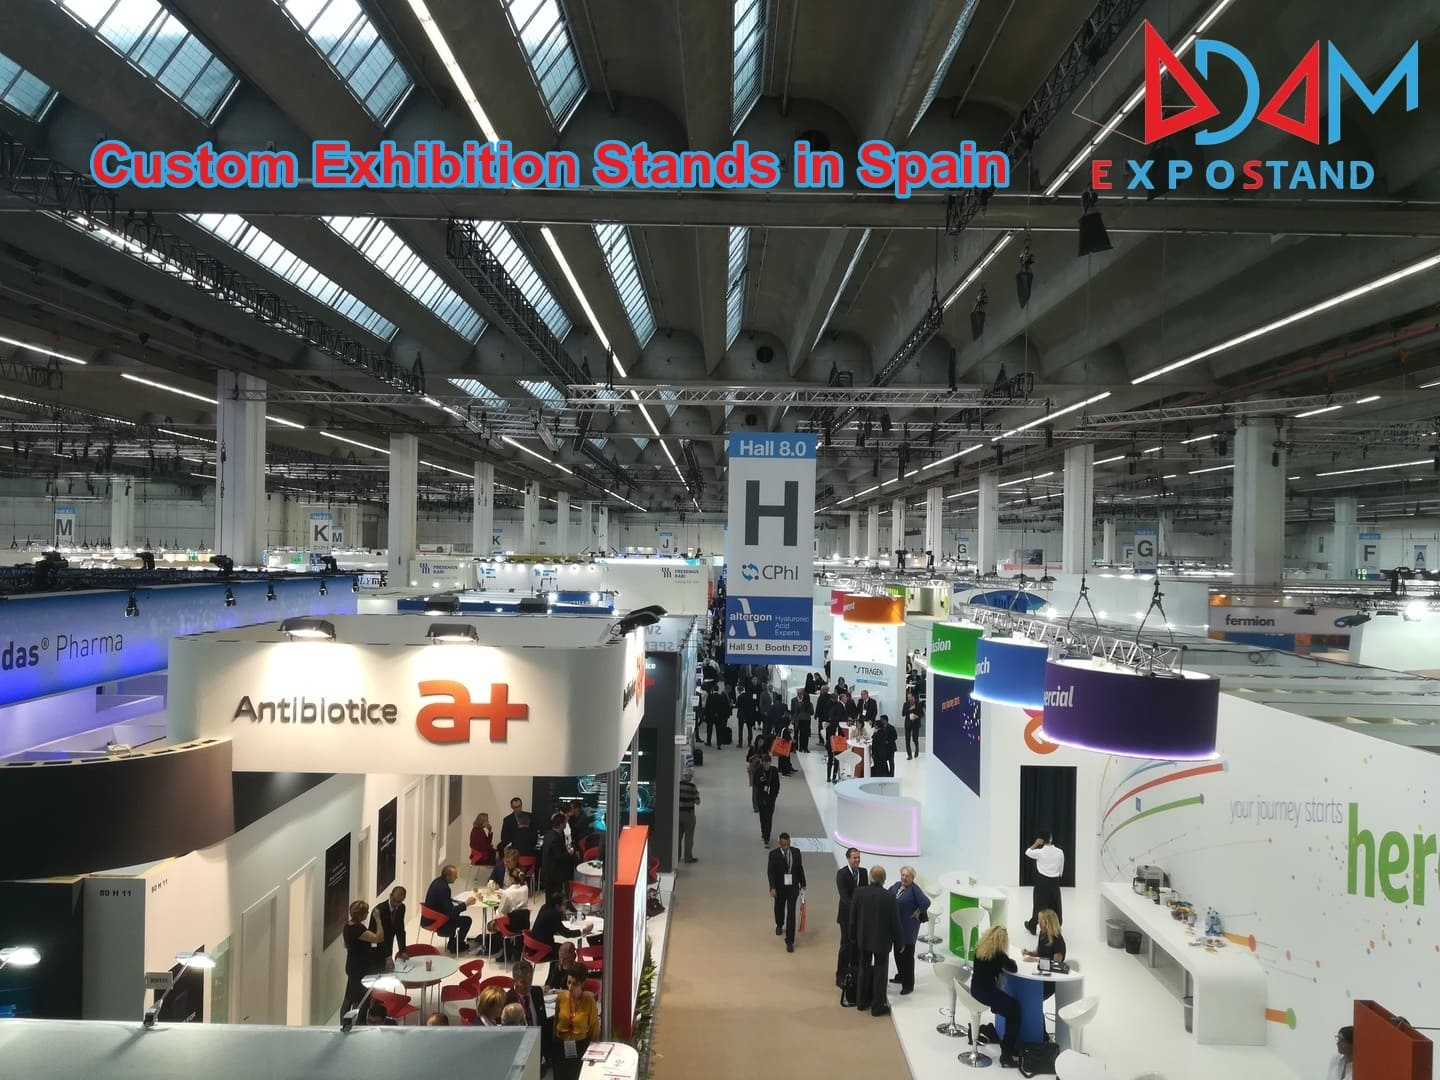 Expo Stands Economic : Mobile world congress barcelona en el actual contexto